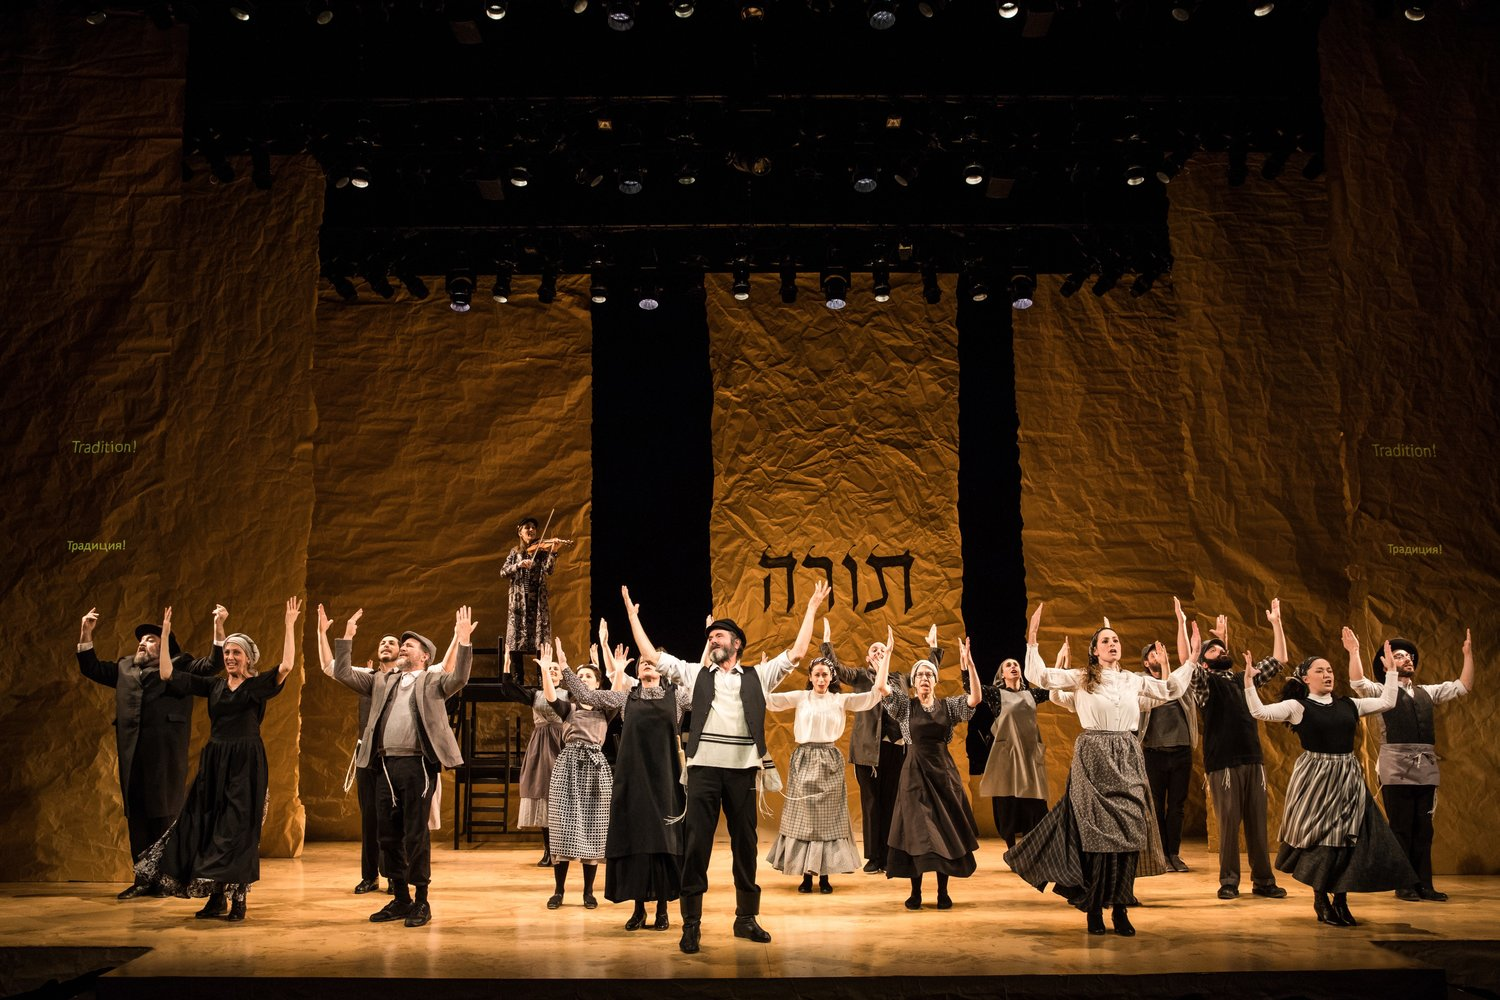 Fiddler o the roof in yiddish